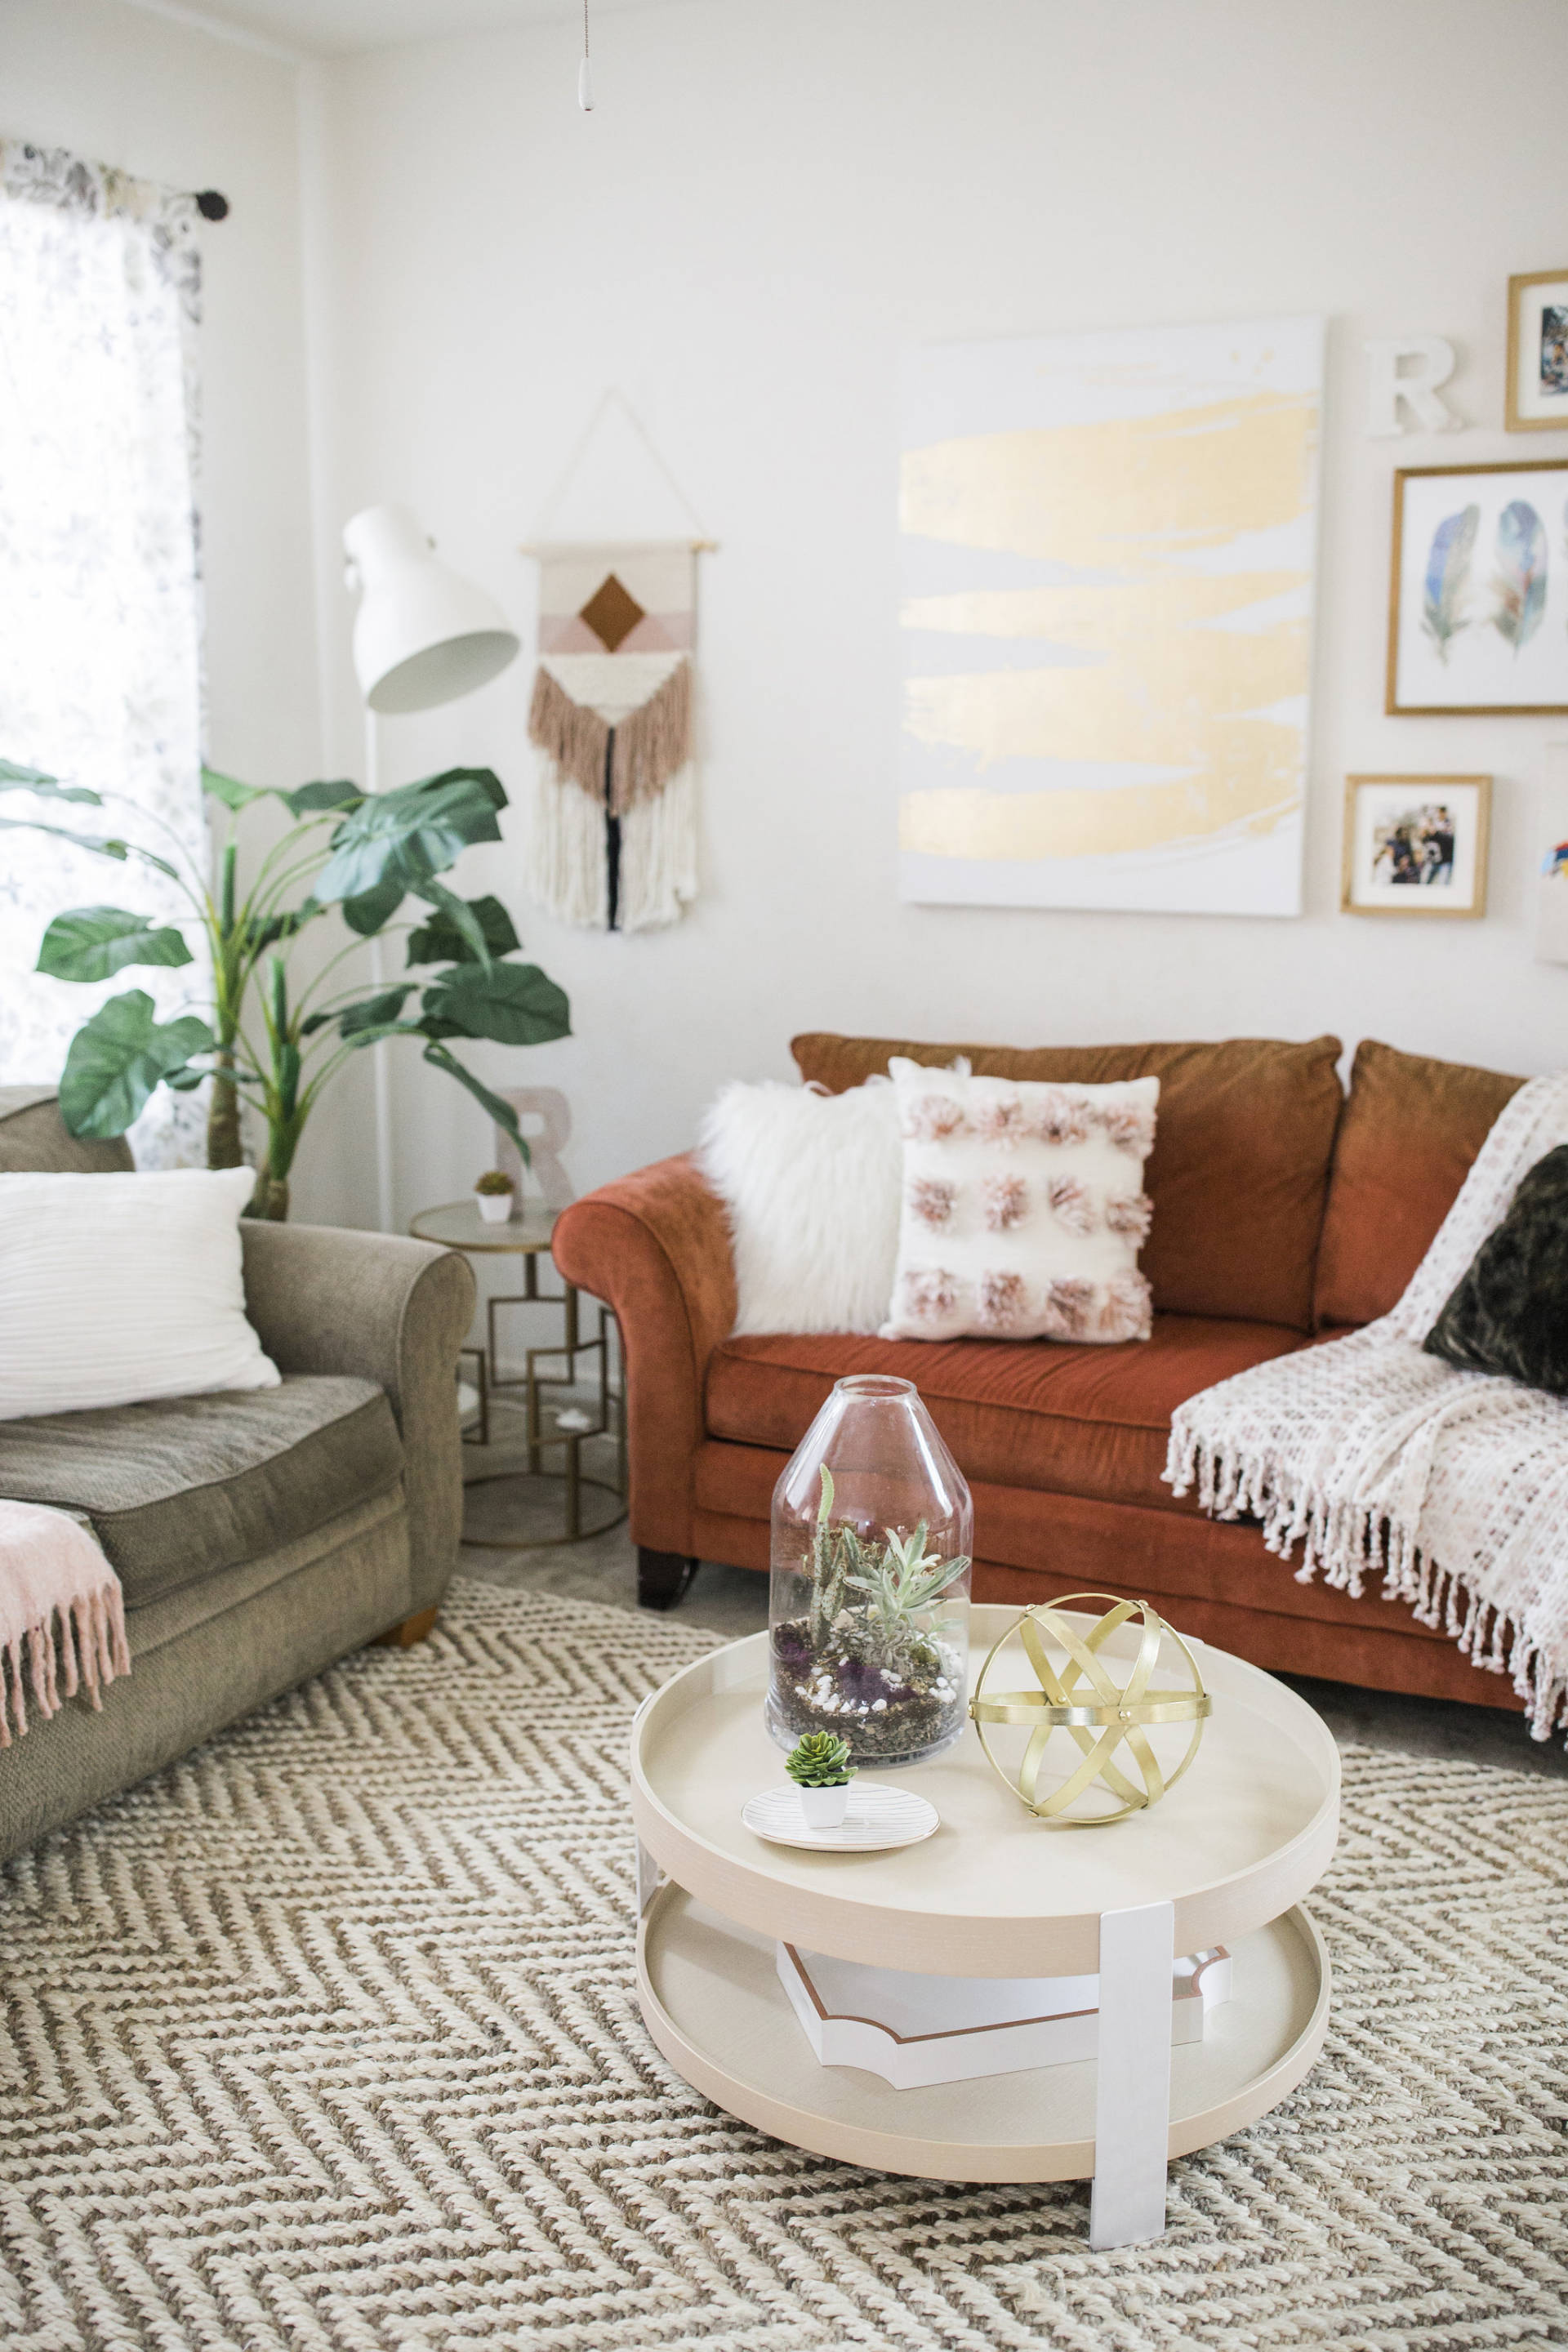 My complete living room make over is finally here! We spruced up the space with the same couches and few key items such a new rug and wall decor!